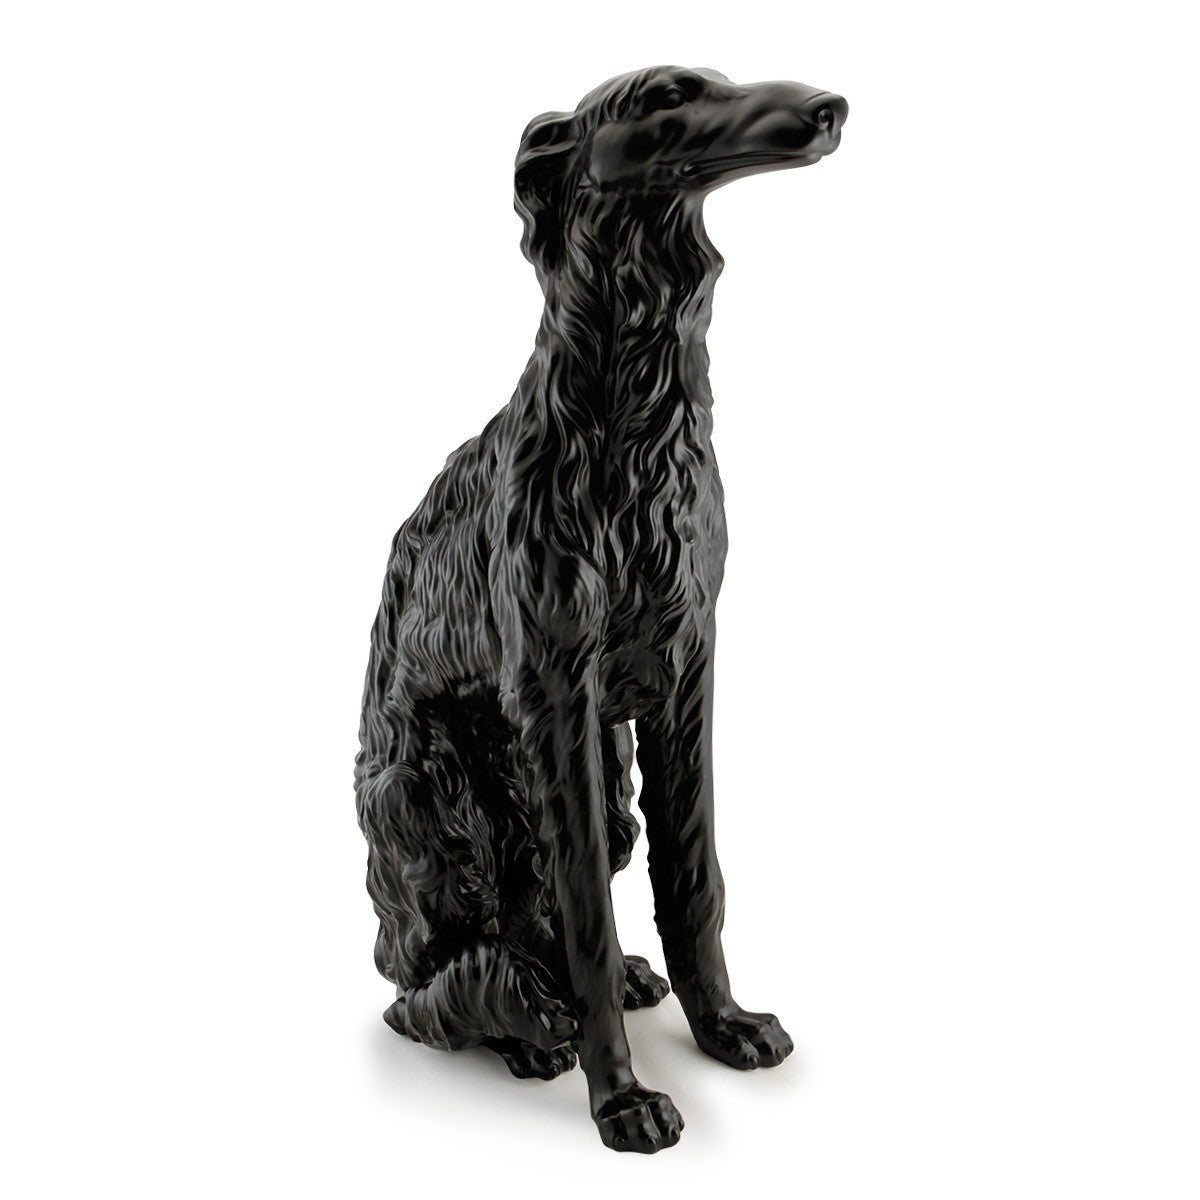 Italian Ceramic russian wolfhound-dog statues-dog lover gifts